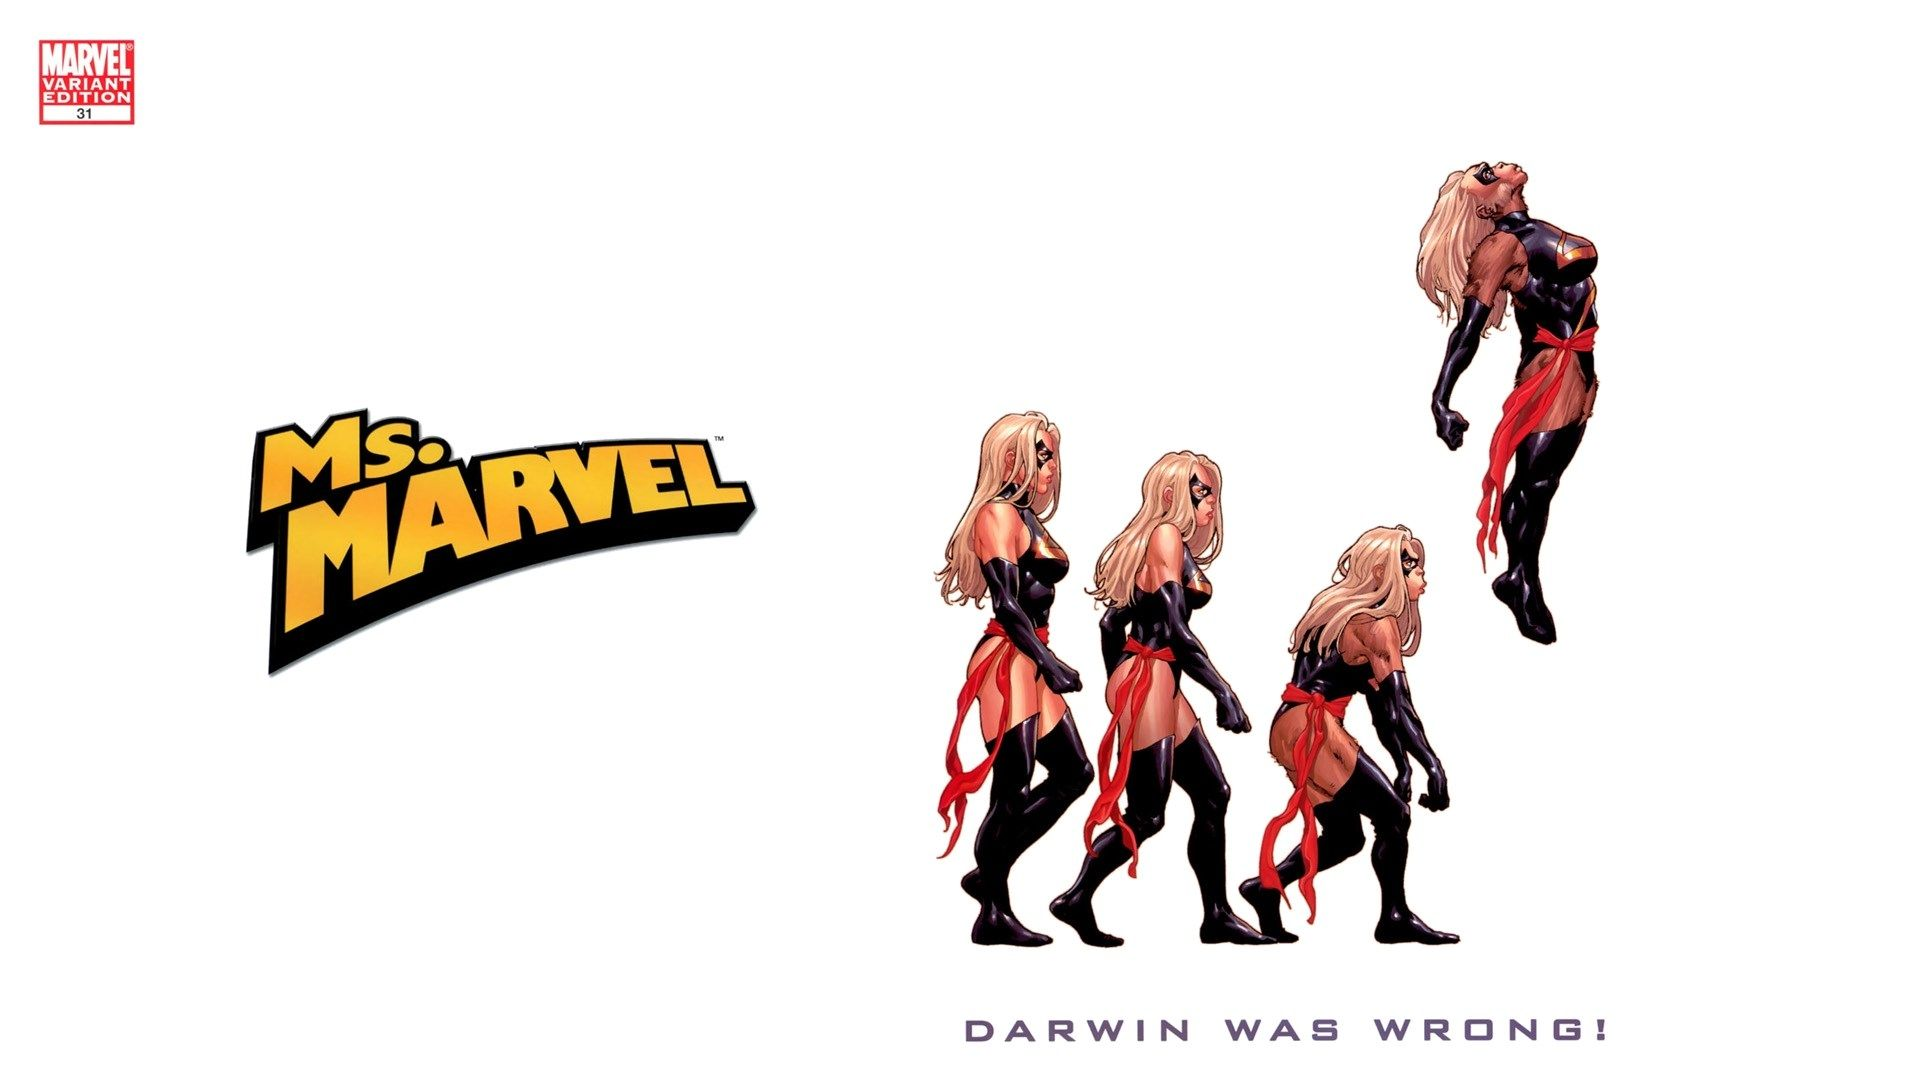 ms marvel wallpaper hd backgrounds images, 150 kb - marley young